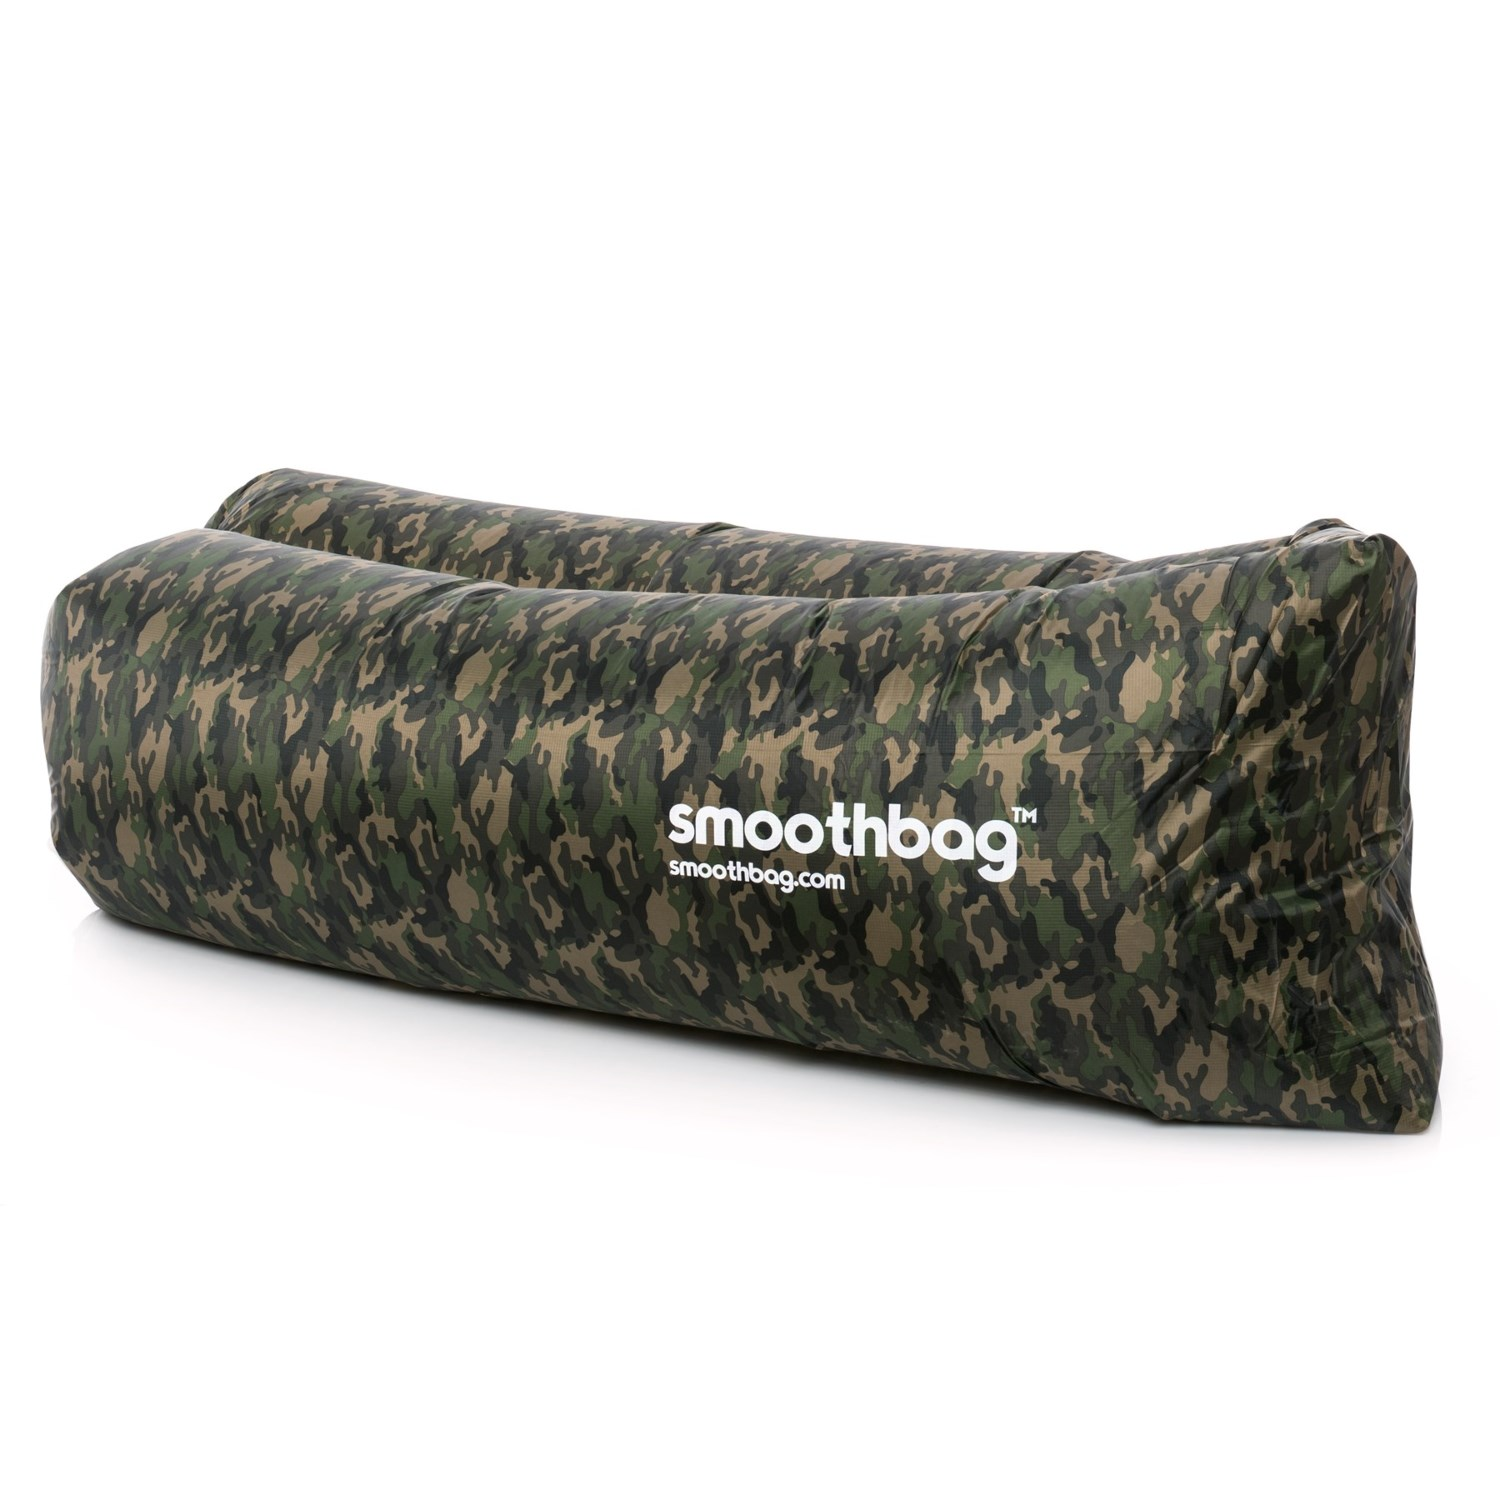 Good SMOOTHBAG Portable Inflatable Lounging Sofa In Camo